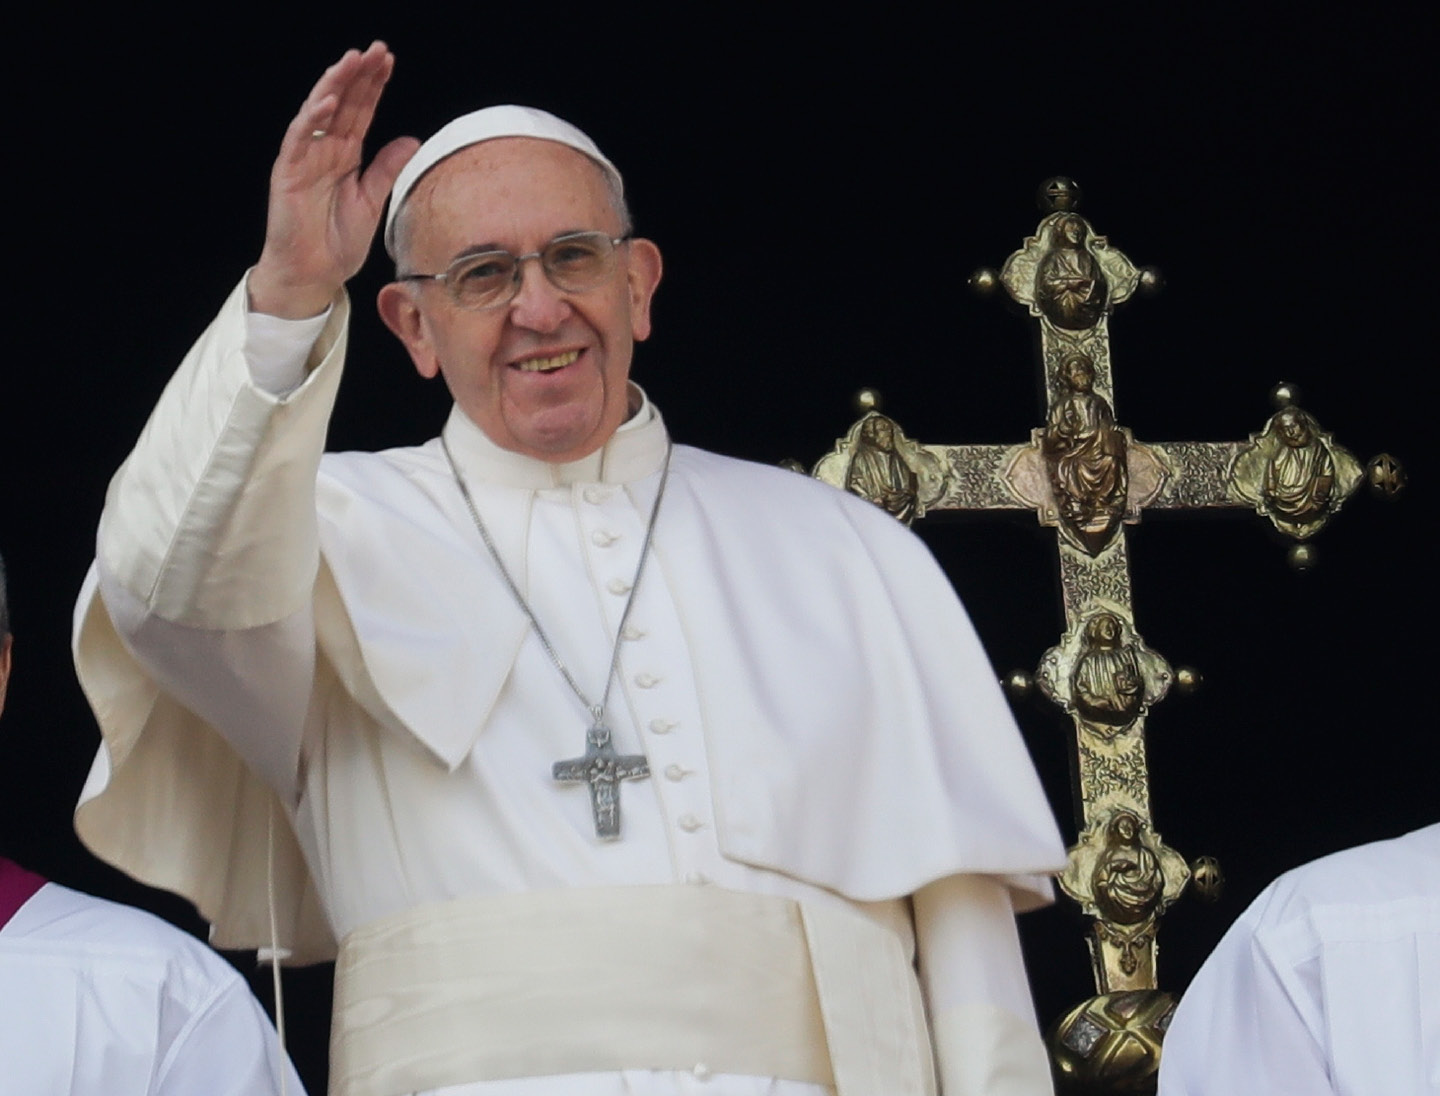 Pope Francis delivers the Urbi et Orbi (Latin for